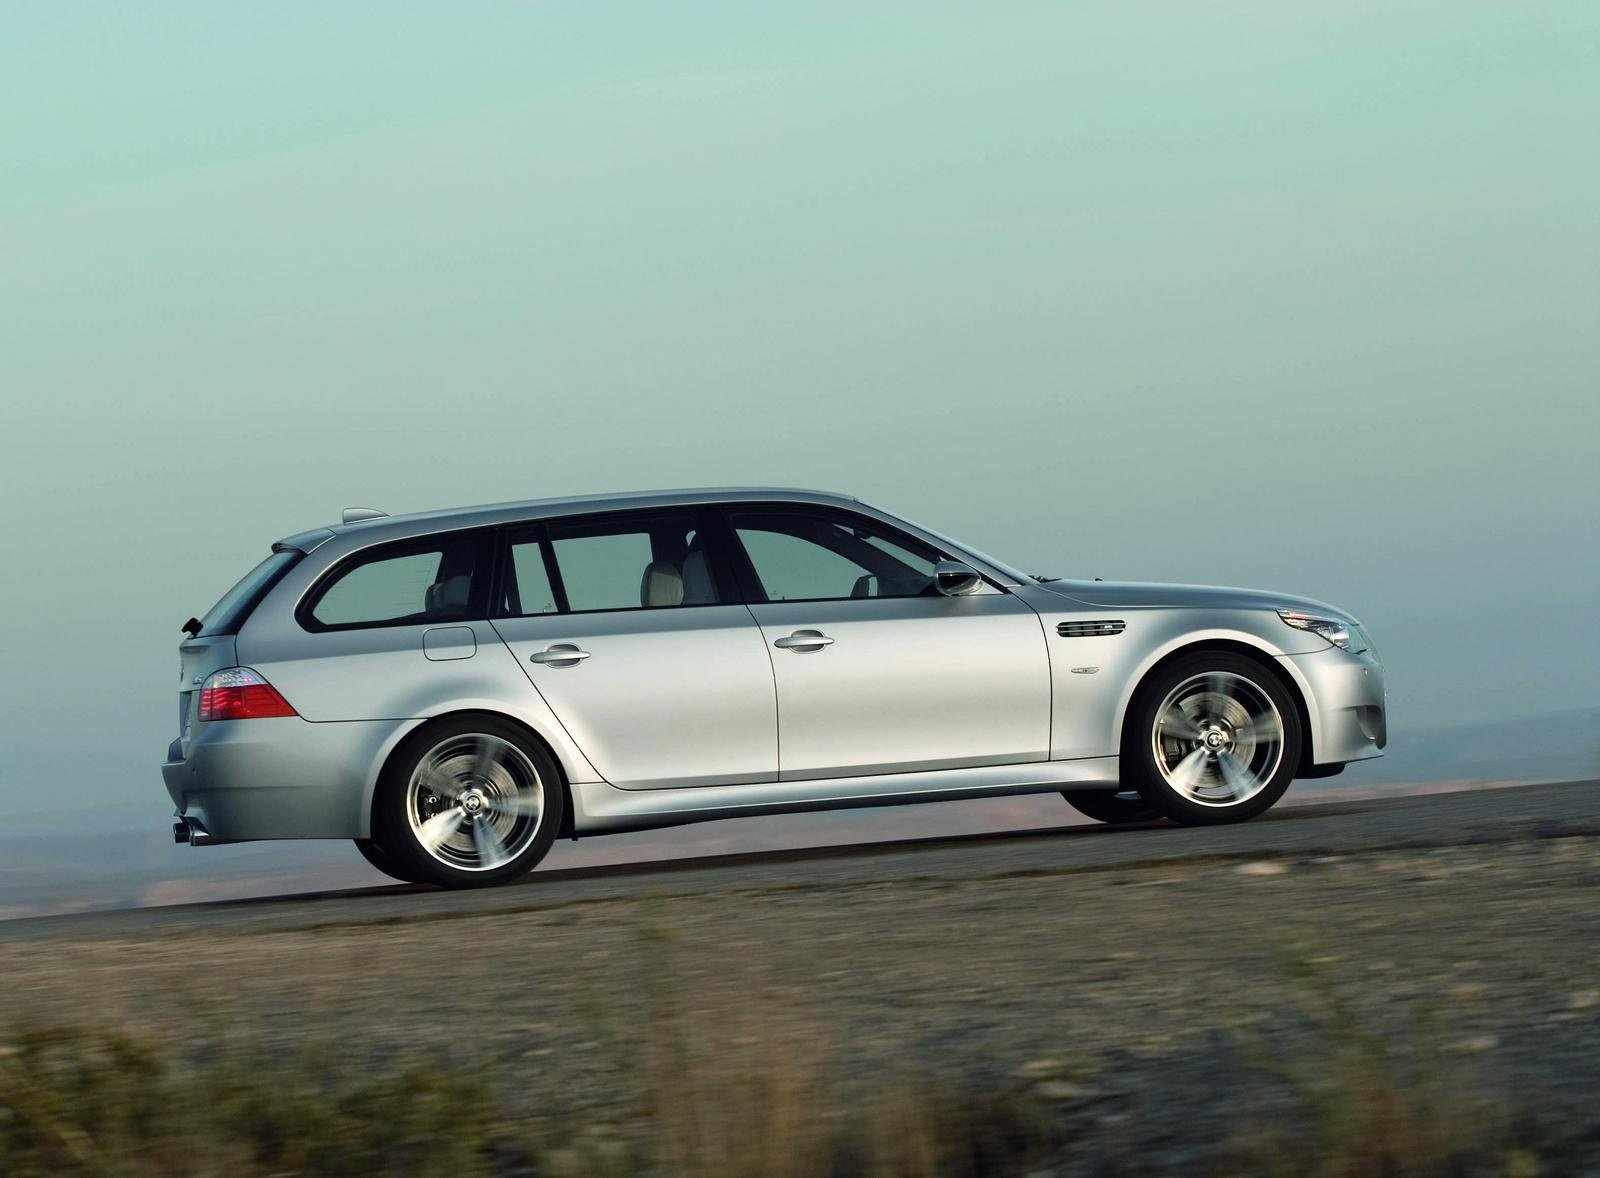 2008 bmw m5 touring picture 125726 car review top speed. Black Bedroom Furniture Sets. Home Design Ideas